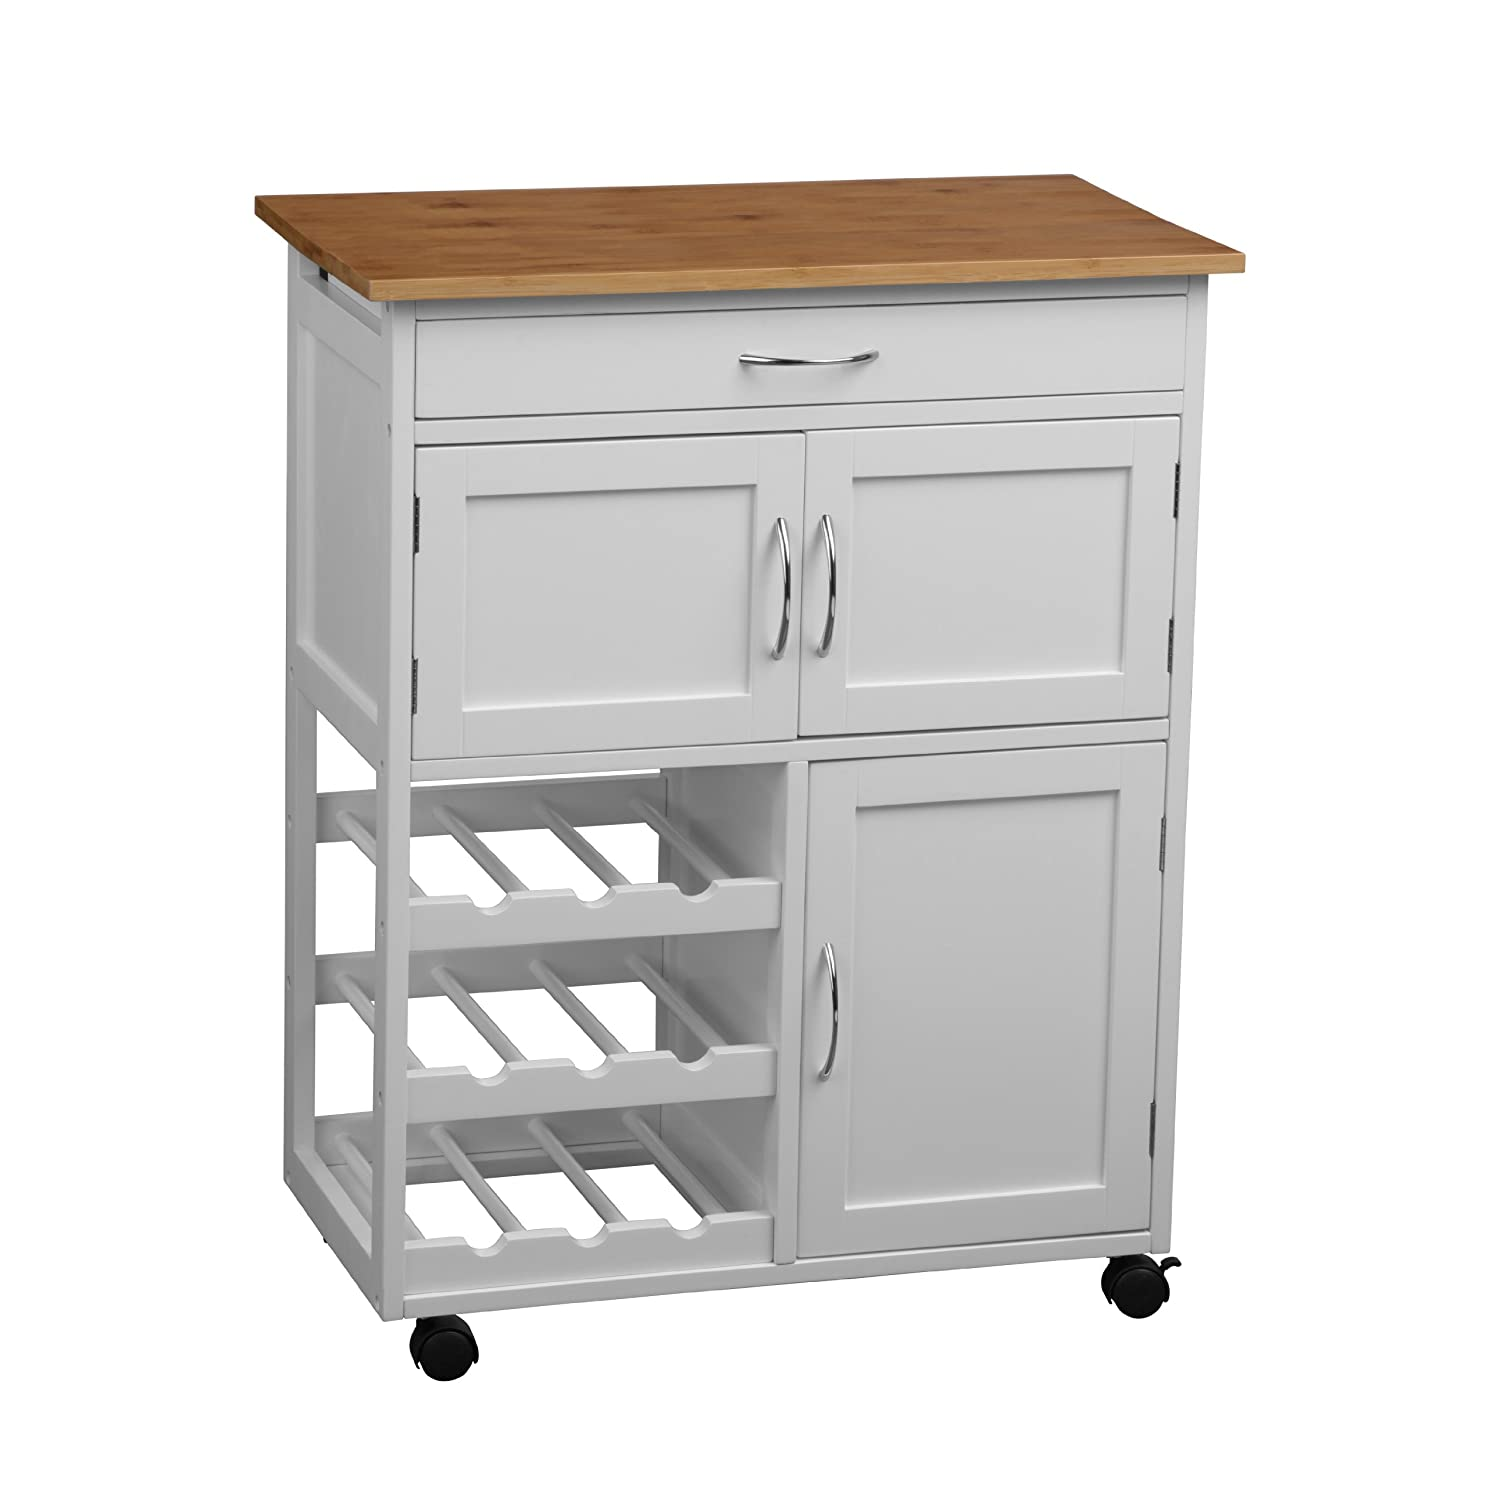 Premier Housewares Kitchen Trolley with Bamboo Top - 84 x 67 x 37 ...